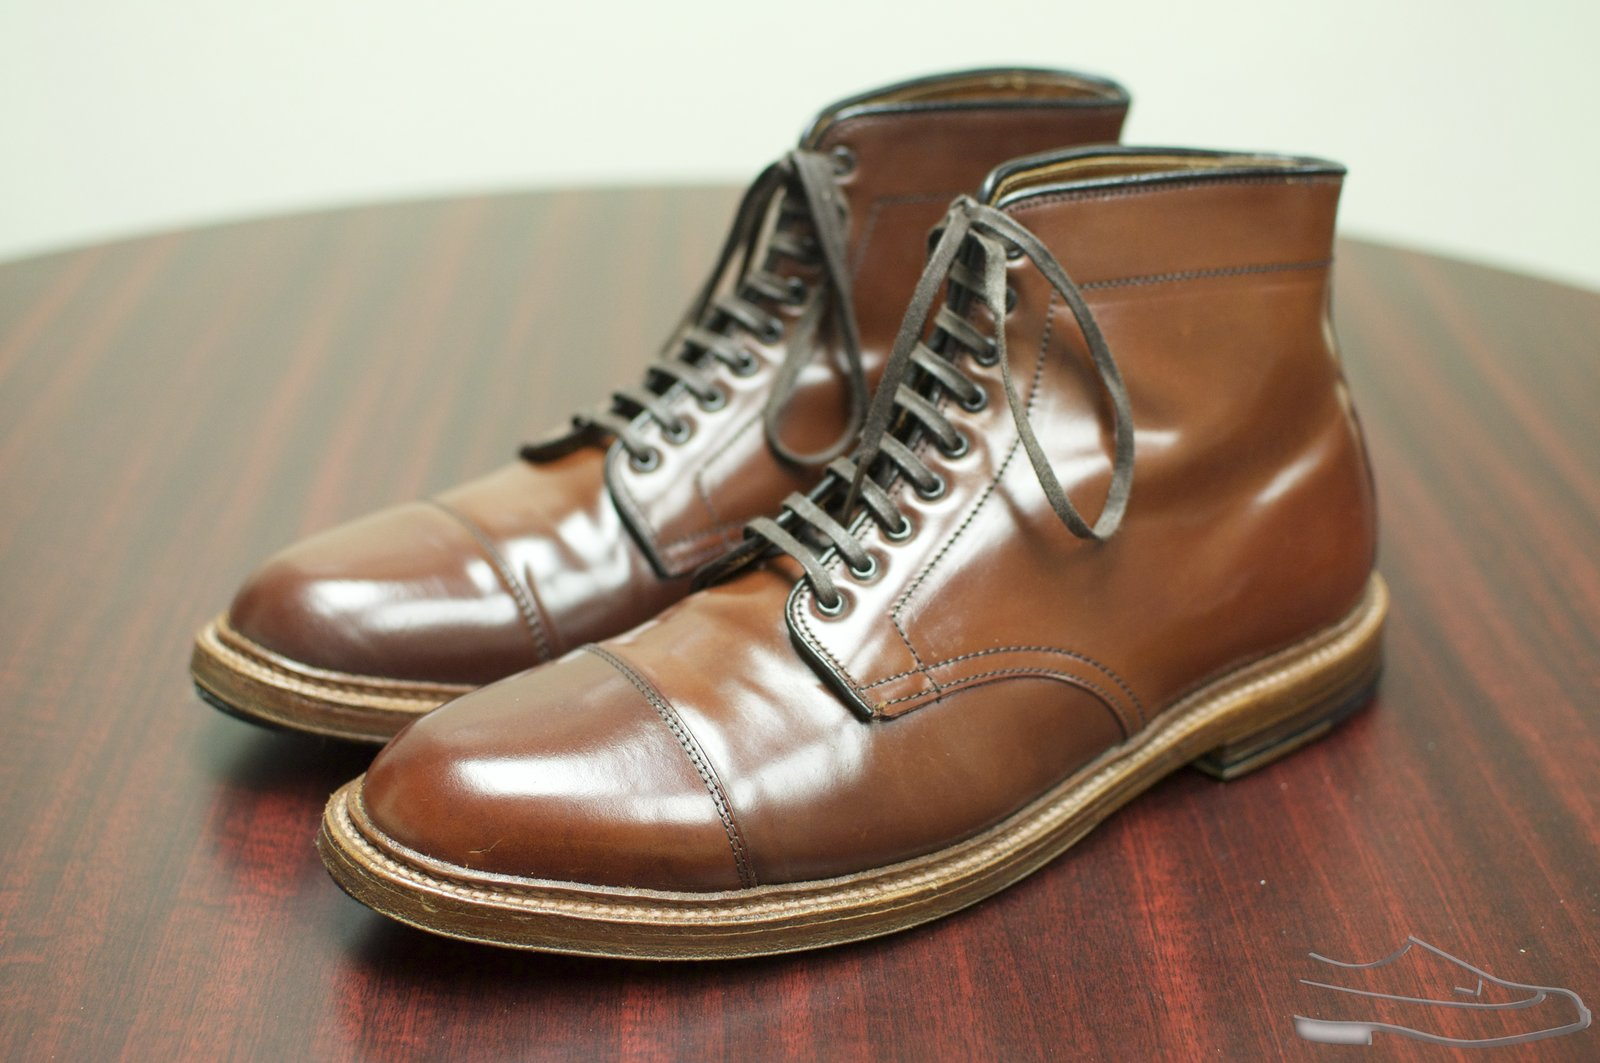 Alden Color #4 Shell Cordovan CT Boots - 2020-09-30 - 1.jpg